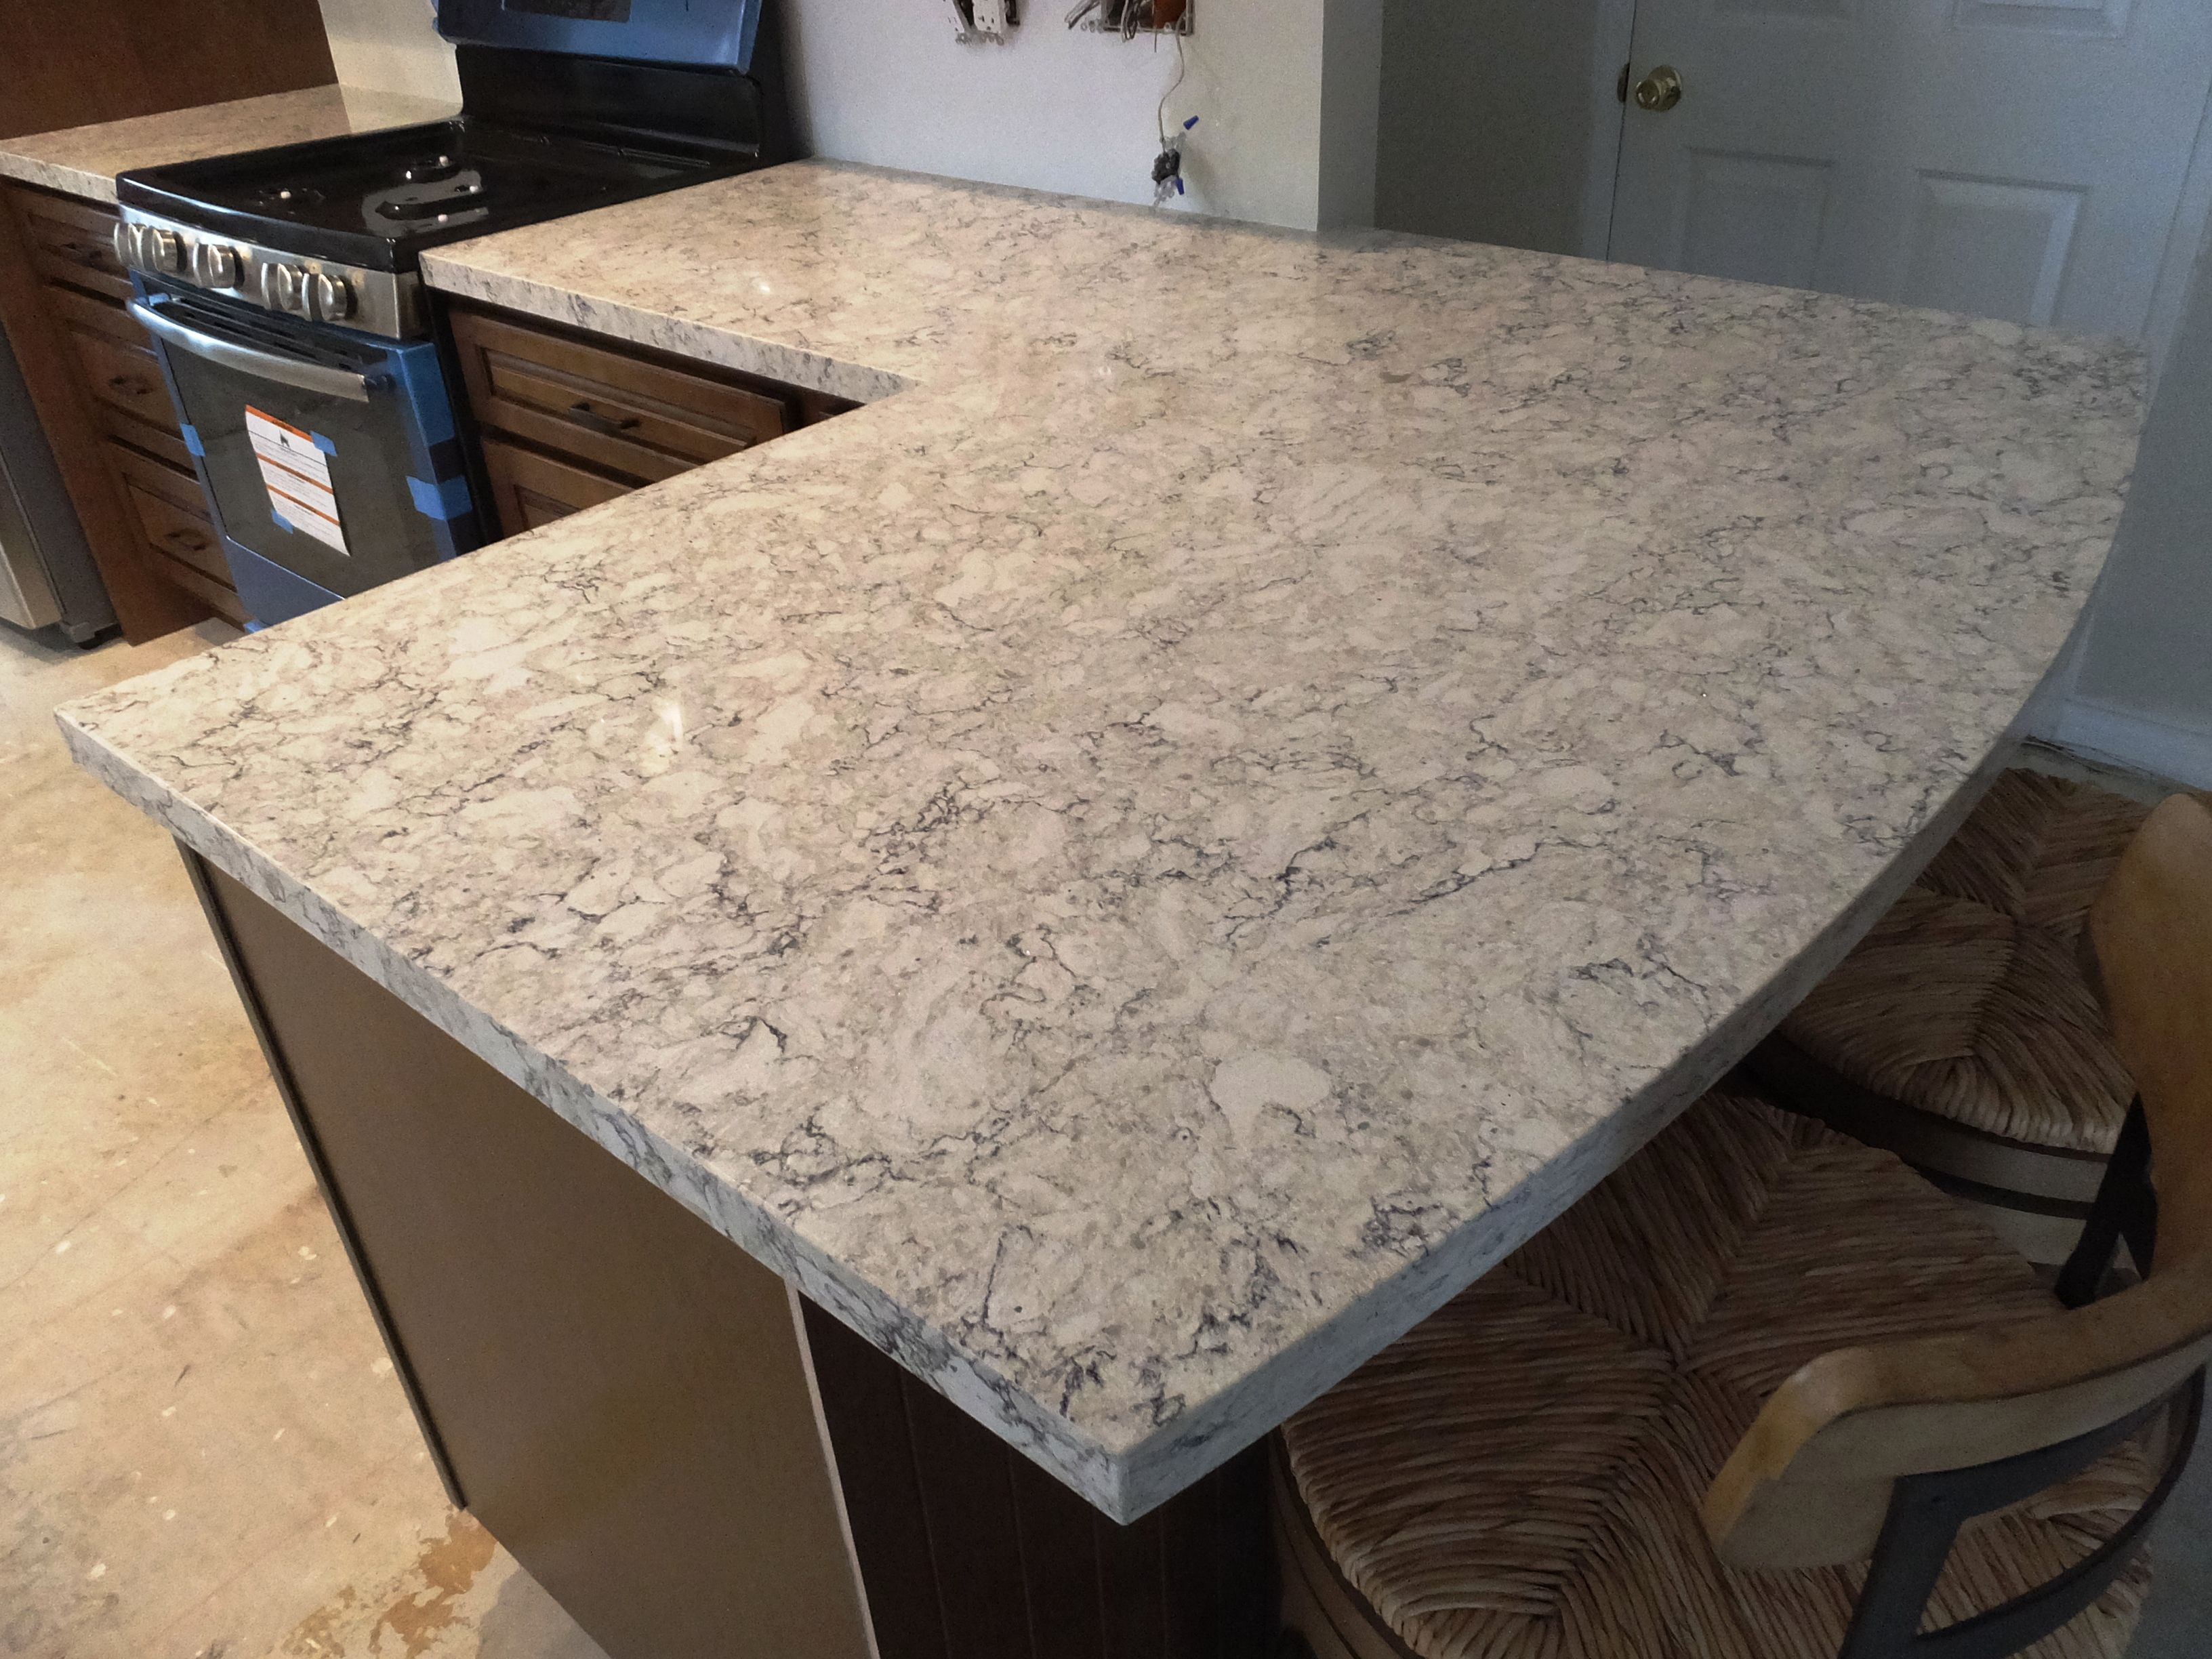 Lg viatera quartz aria clean cut stone bar counter What is the whitest quartz countertop